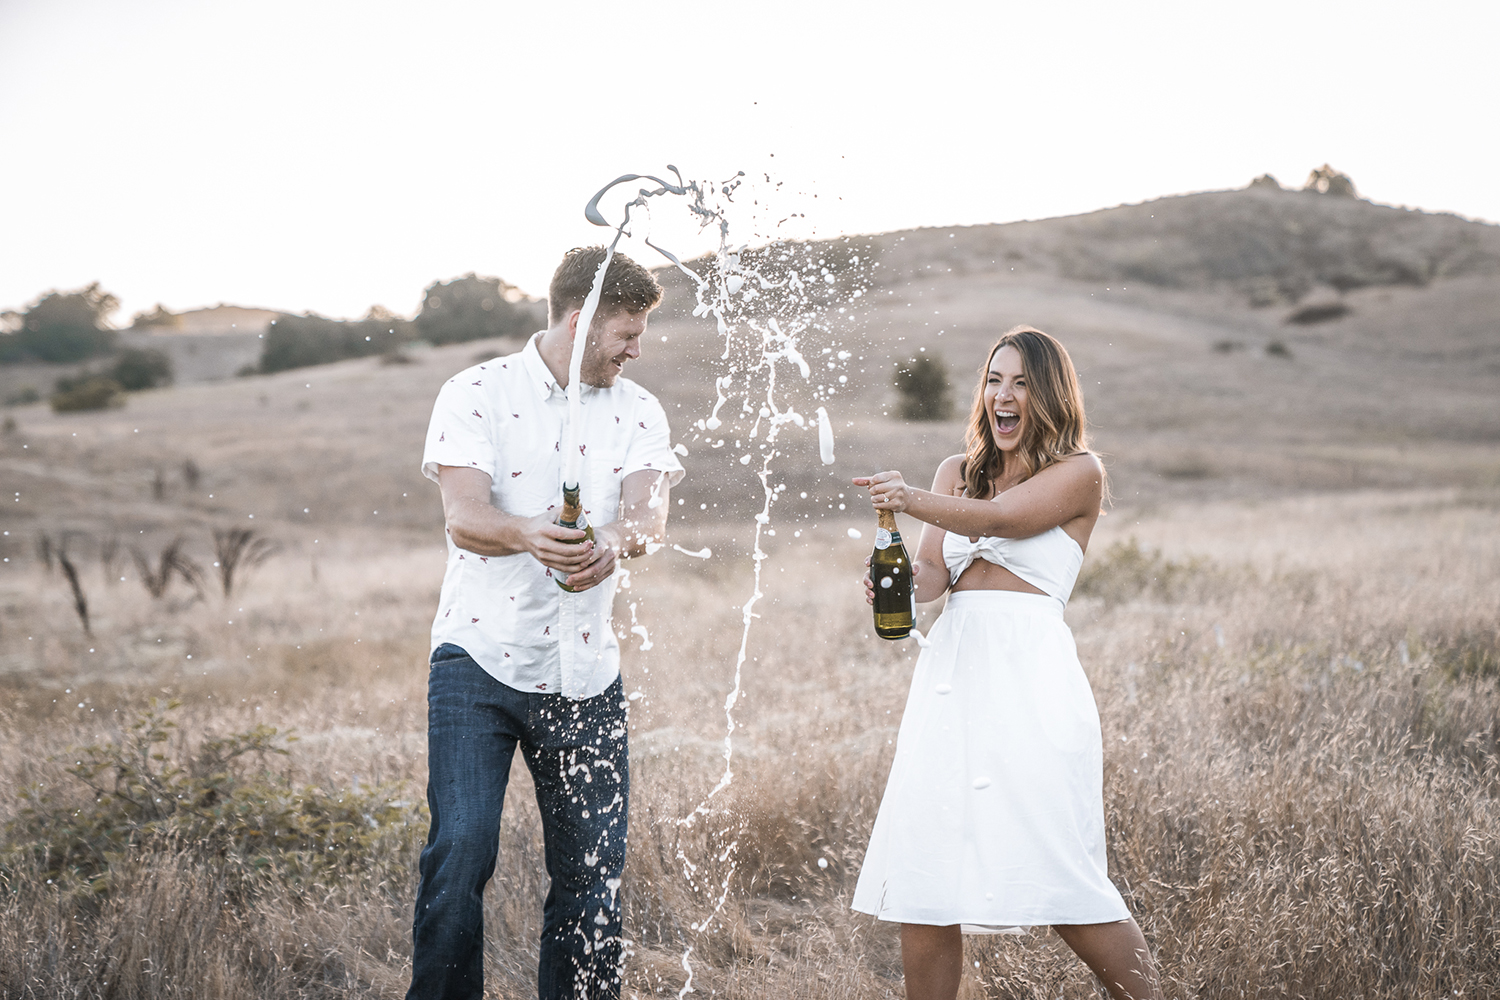 Engagement Planning / Engagement Session / Wedding Budget Talk / Budget Smarts / Lucky Day Events Co. / Ashley Wall Photography / Budgeting for a Wedding / How To Set A Wedding Budget / Champagne Popping Engagement Picture